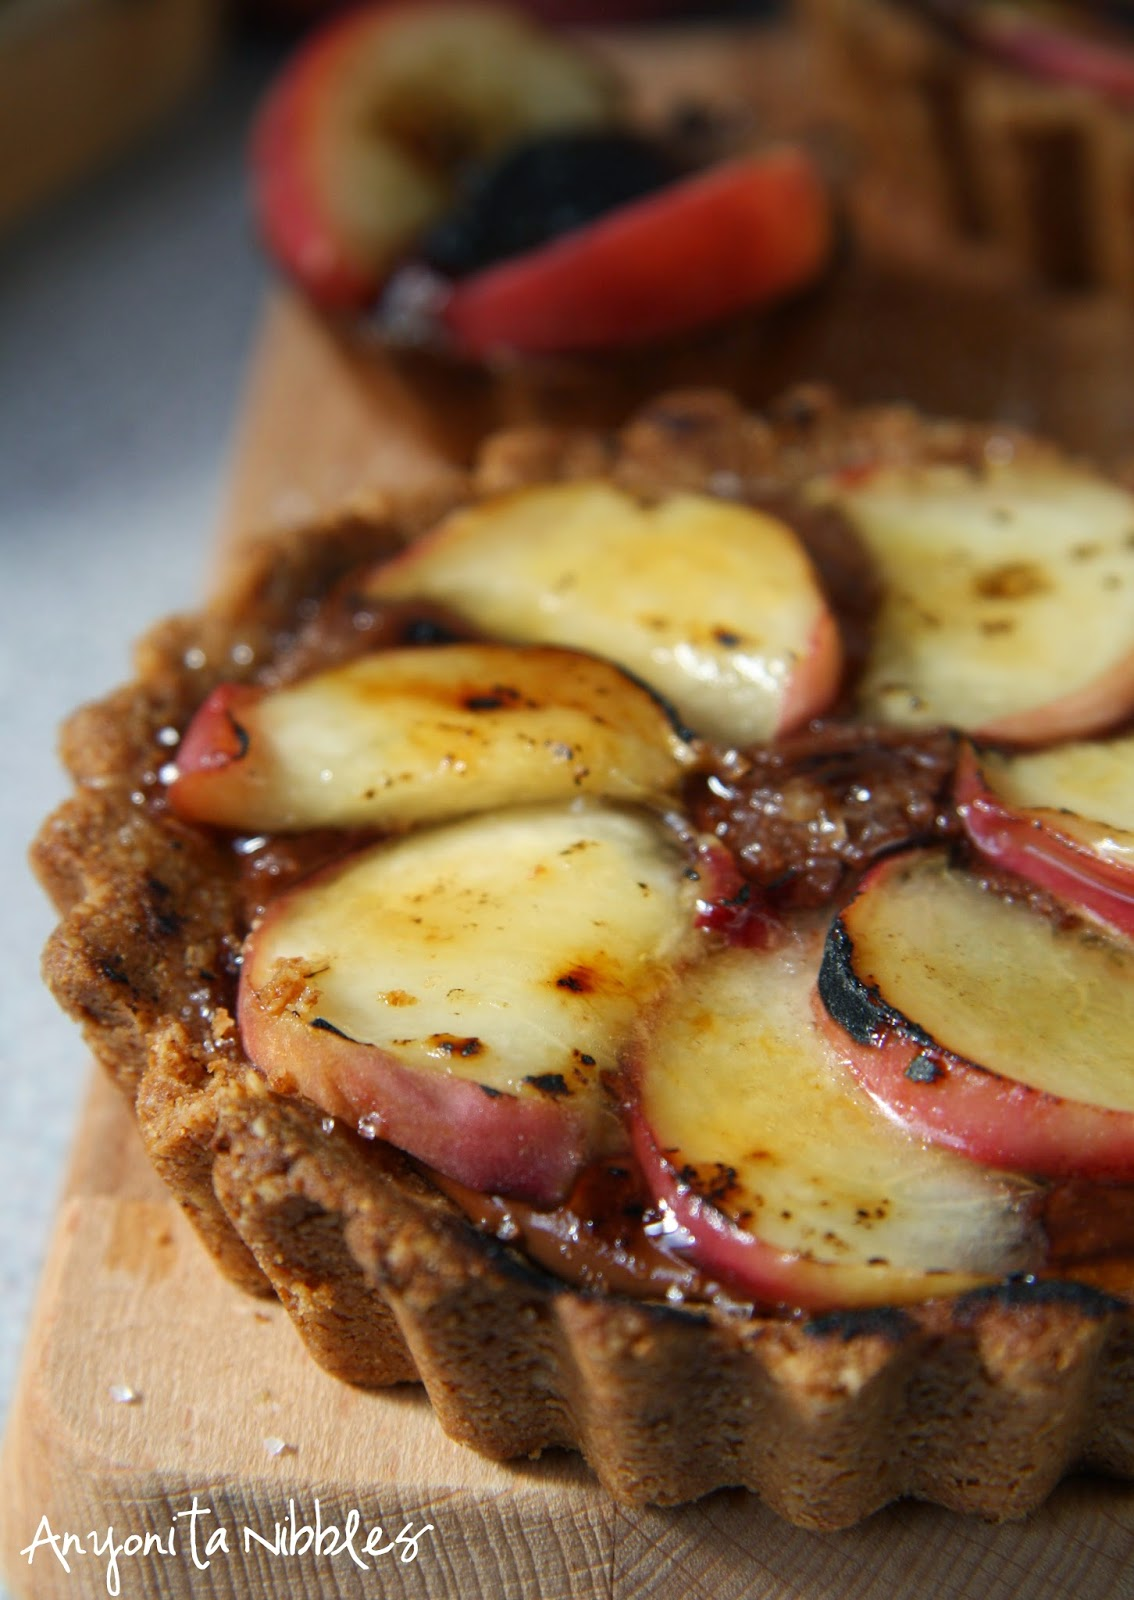 Lightly burnished peaches in a peach & Nutella tart by Anyonita Nibbles